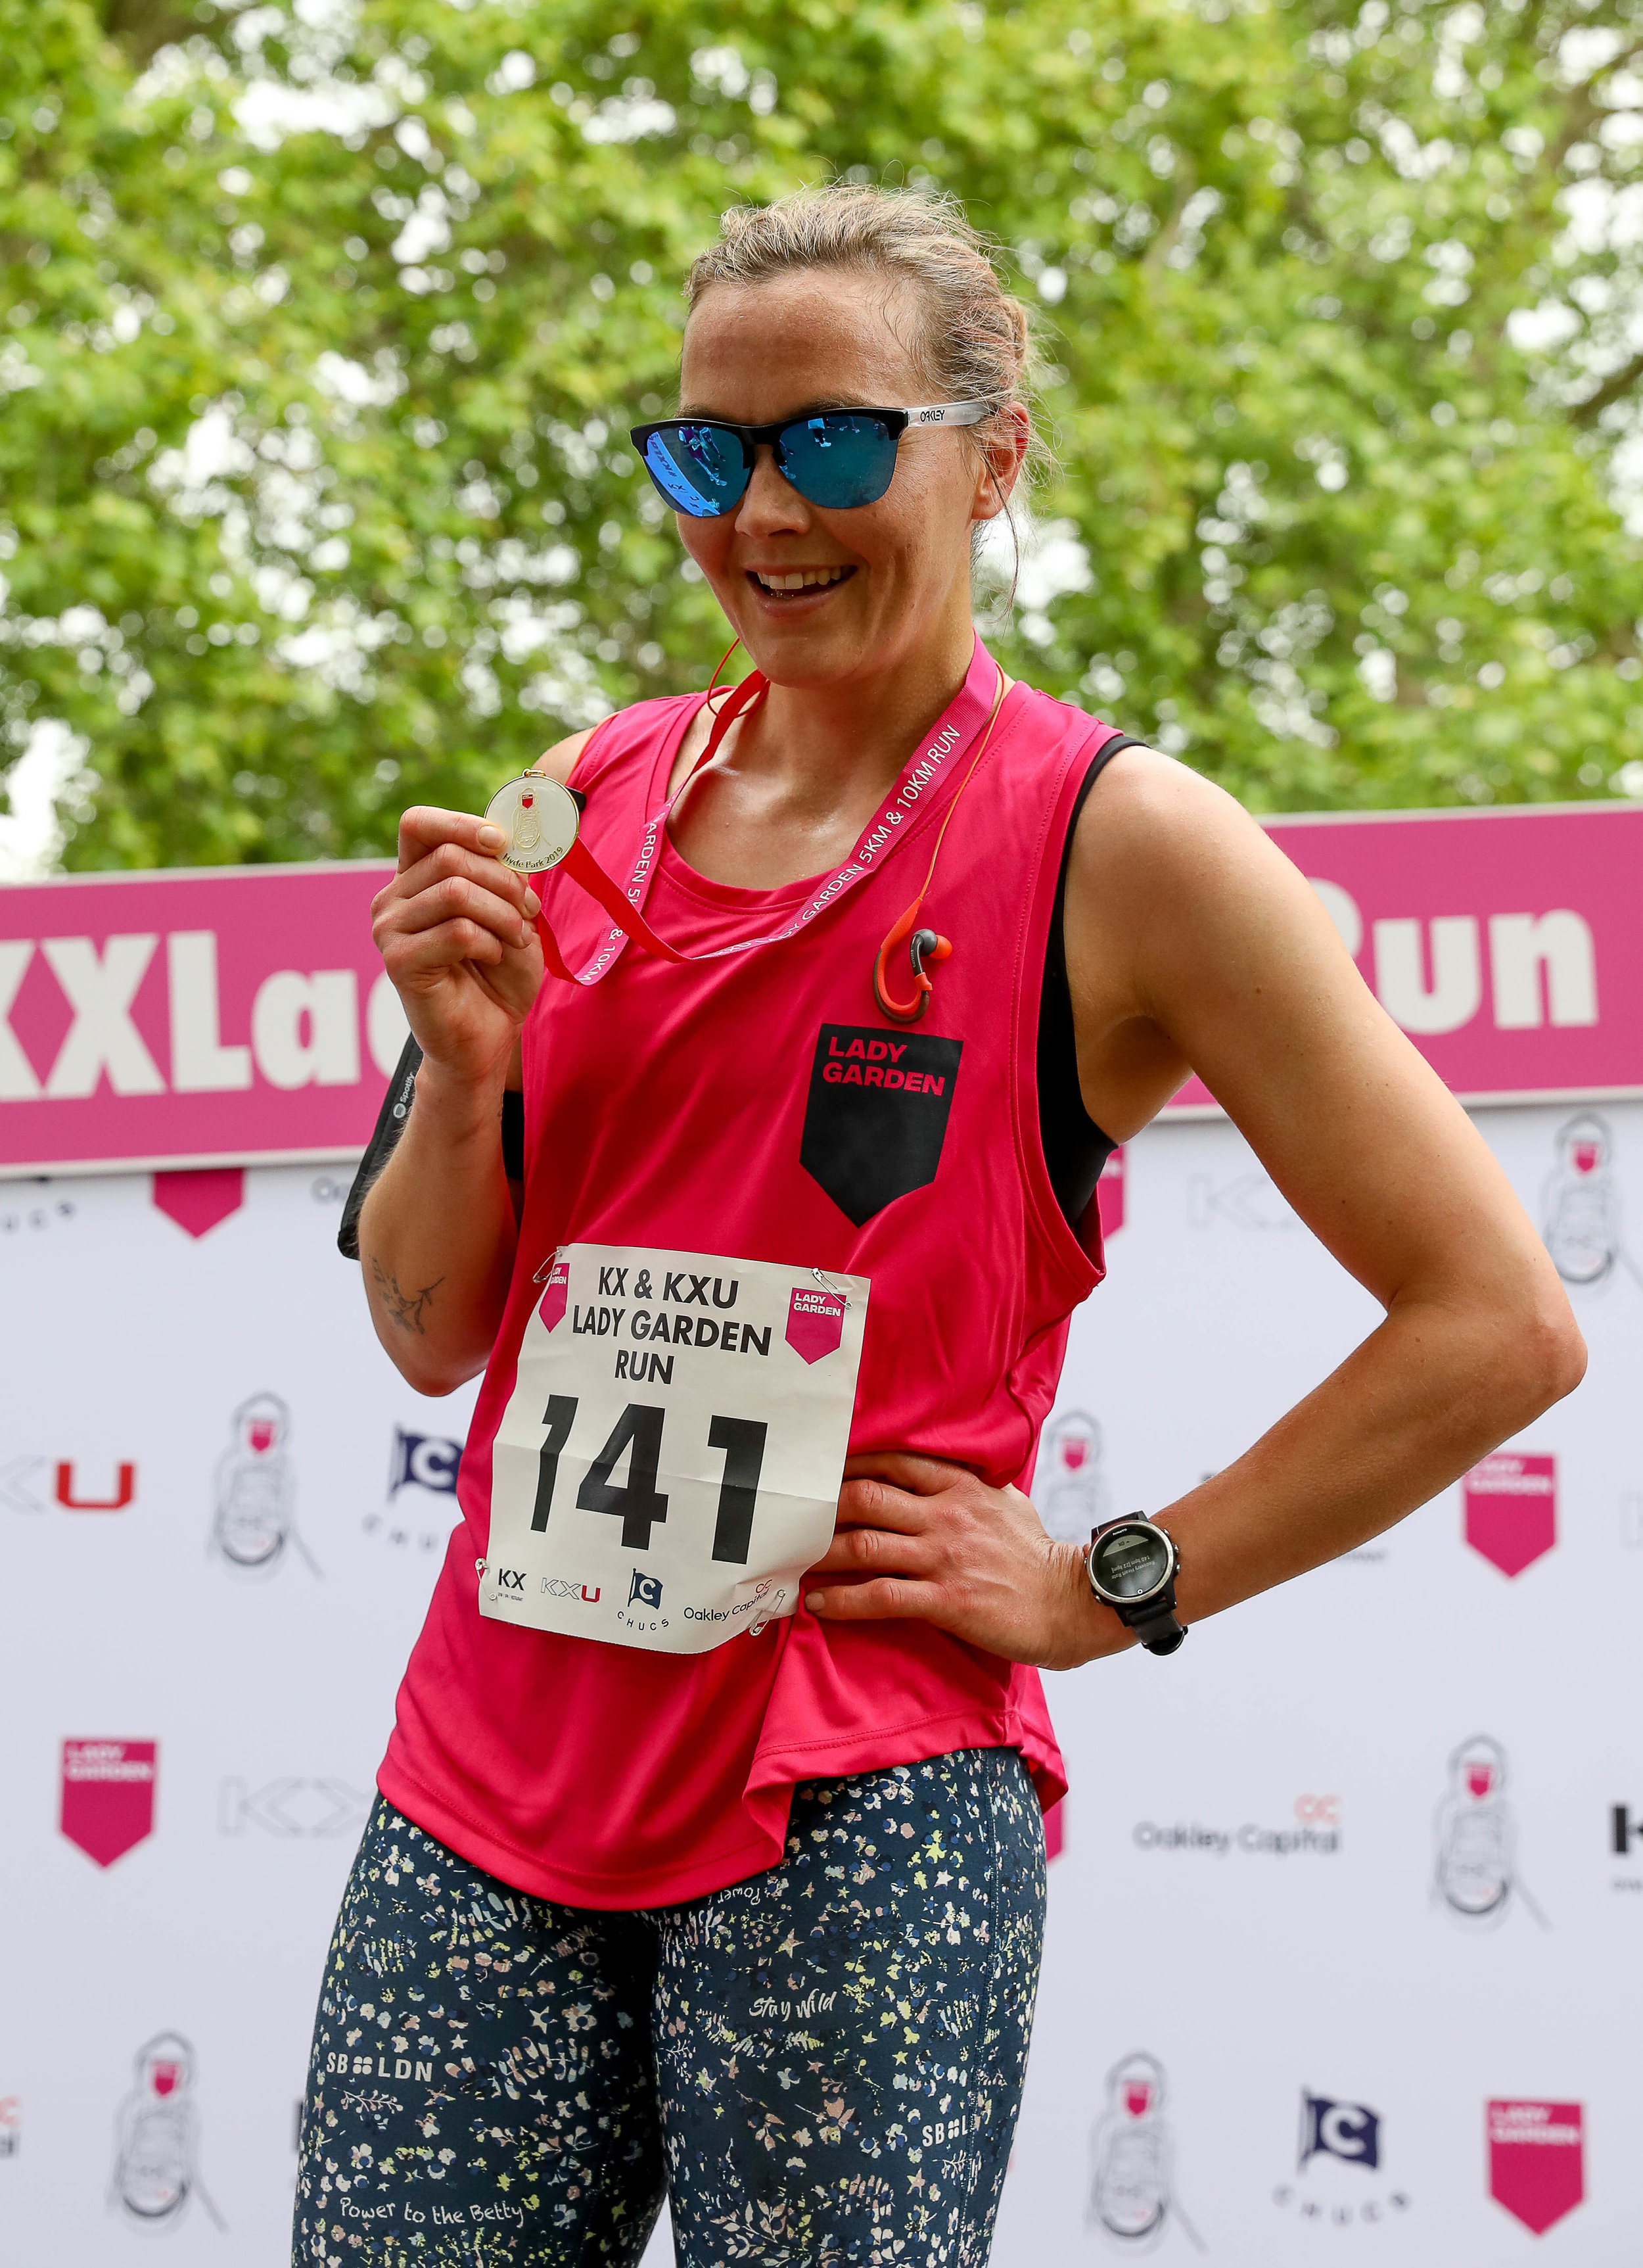 The KX & LXU Lady Garden Run 2019 - Following the success of last year's Lady Garden Run which raised a phenomenal £86,000, The Lady Garden Foundation sprinted back into action on Saturday 18th May for the 2019 KX & KXU Lady Garden Run in Hyde Park, supported by Chucs Restaurants and Oakley Capital. The 500 strong participants were joined by long-term Lady Garden supporters such as Victoria Pendleton and Elizabeth Saltzman. Before setting off on either a 5k or 10k course, everyone got warmed up thanks to Paola's Bodybarre, with Charlotte De Carle on the decks. All runners got a fantastic goody bags , generously donated by APE Snacks, Bumble, DASH Water, Deliciously Ella, Doisy and Dam, Heath and Heather, Marmite, Nails Inc., Ohne Tampons, Rebel Kitchen and Vaseline. The incredible £90k raised by this years event will go towards even more life changing research and gynaecological cancer support at the Royal Marsden Hospital.